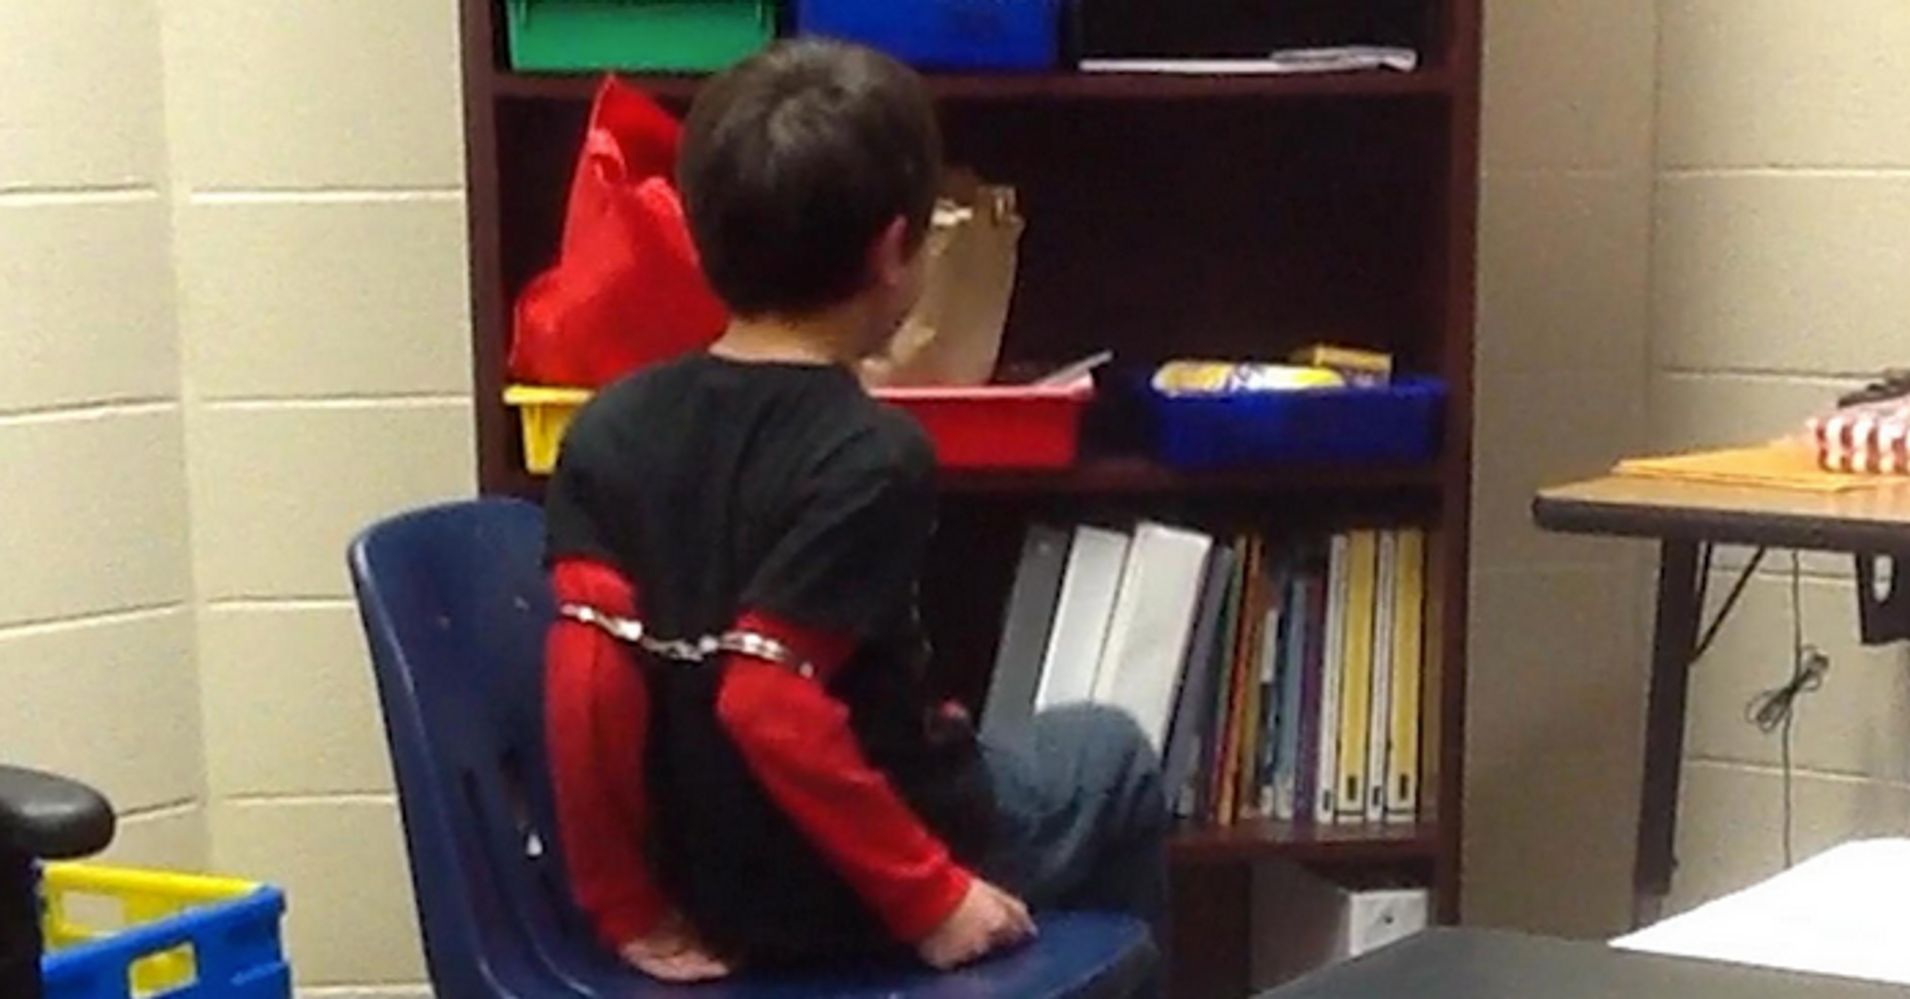 Handcuffing Third Grader Interactions >> Handcuffing Little Kids May Not Be Reasonable Says Obama Doj